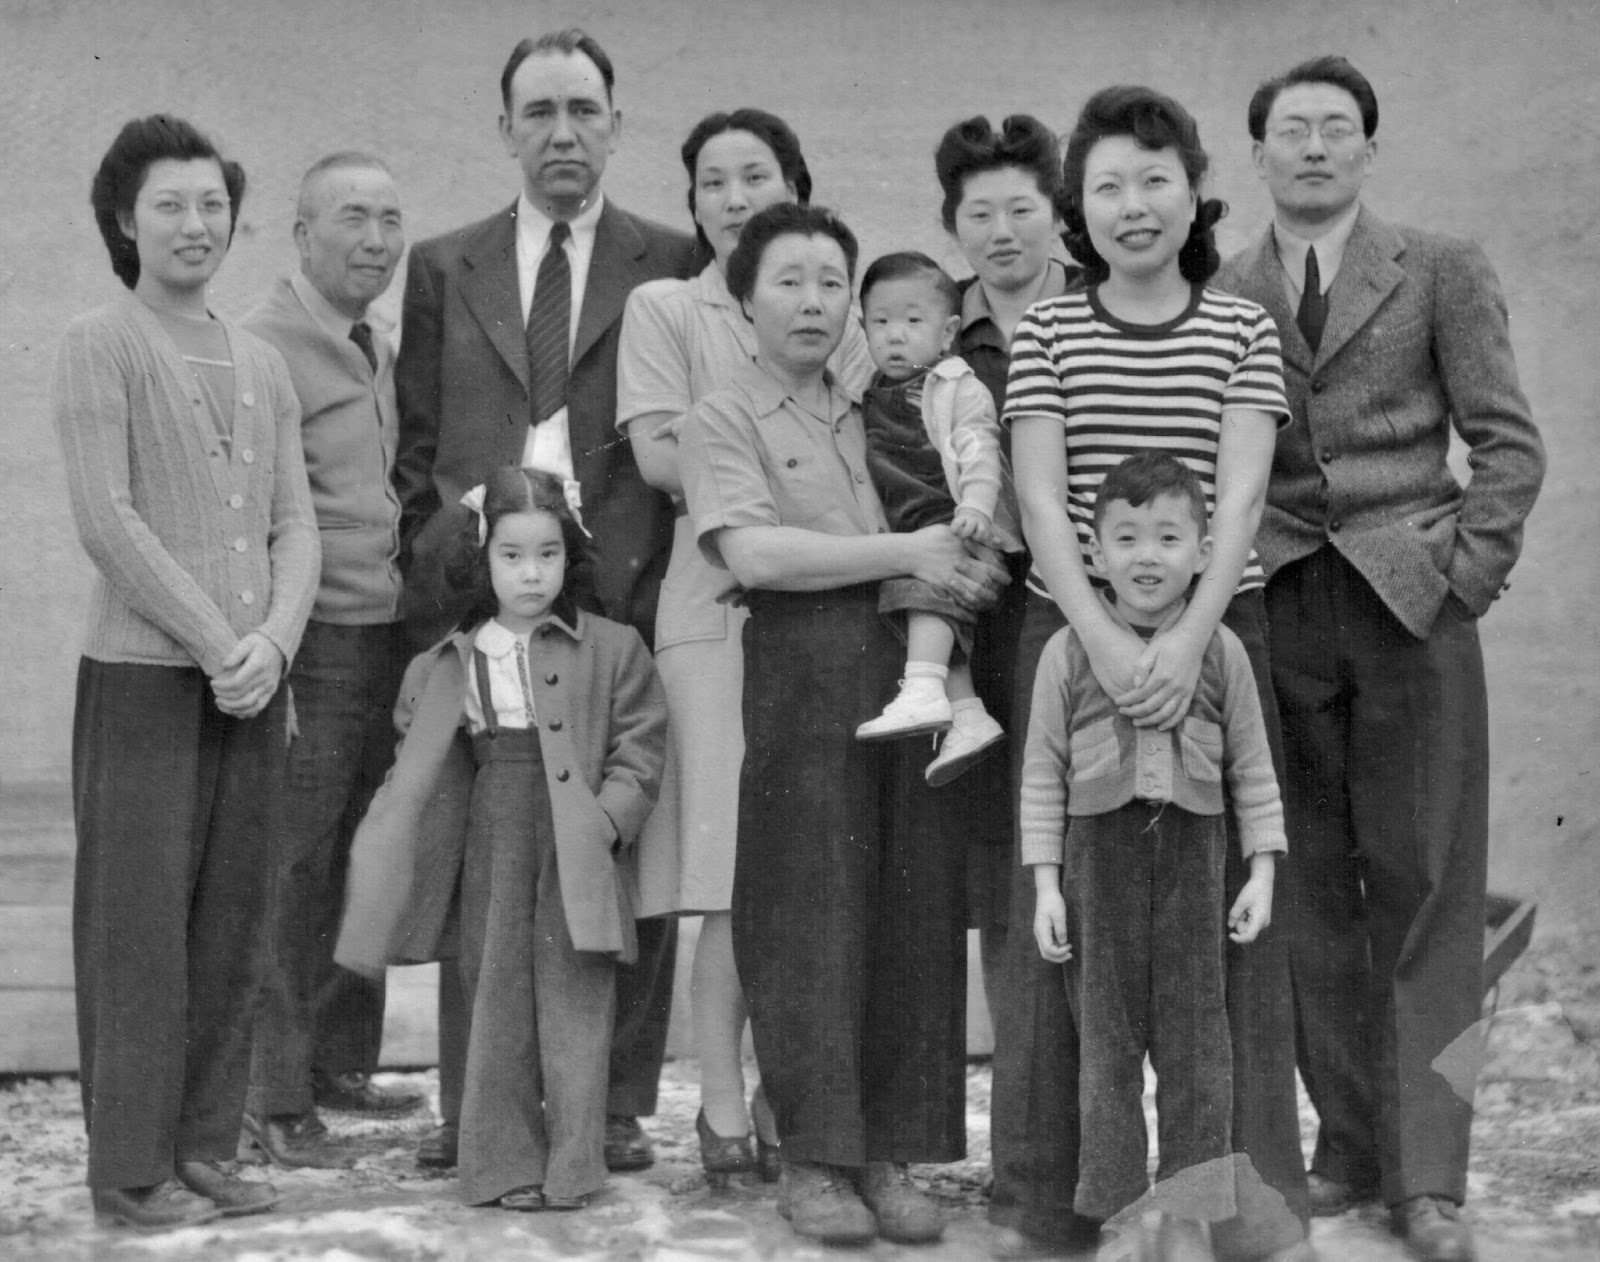 Group photo of Nobuko Miyamoto's family in 1945. They are standing together facing the camera, most with slight smiles. Nobuko appears as a smile child standing in front of her father.